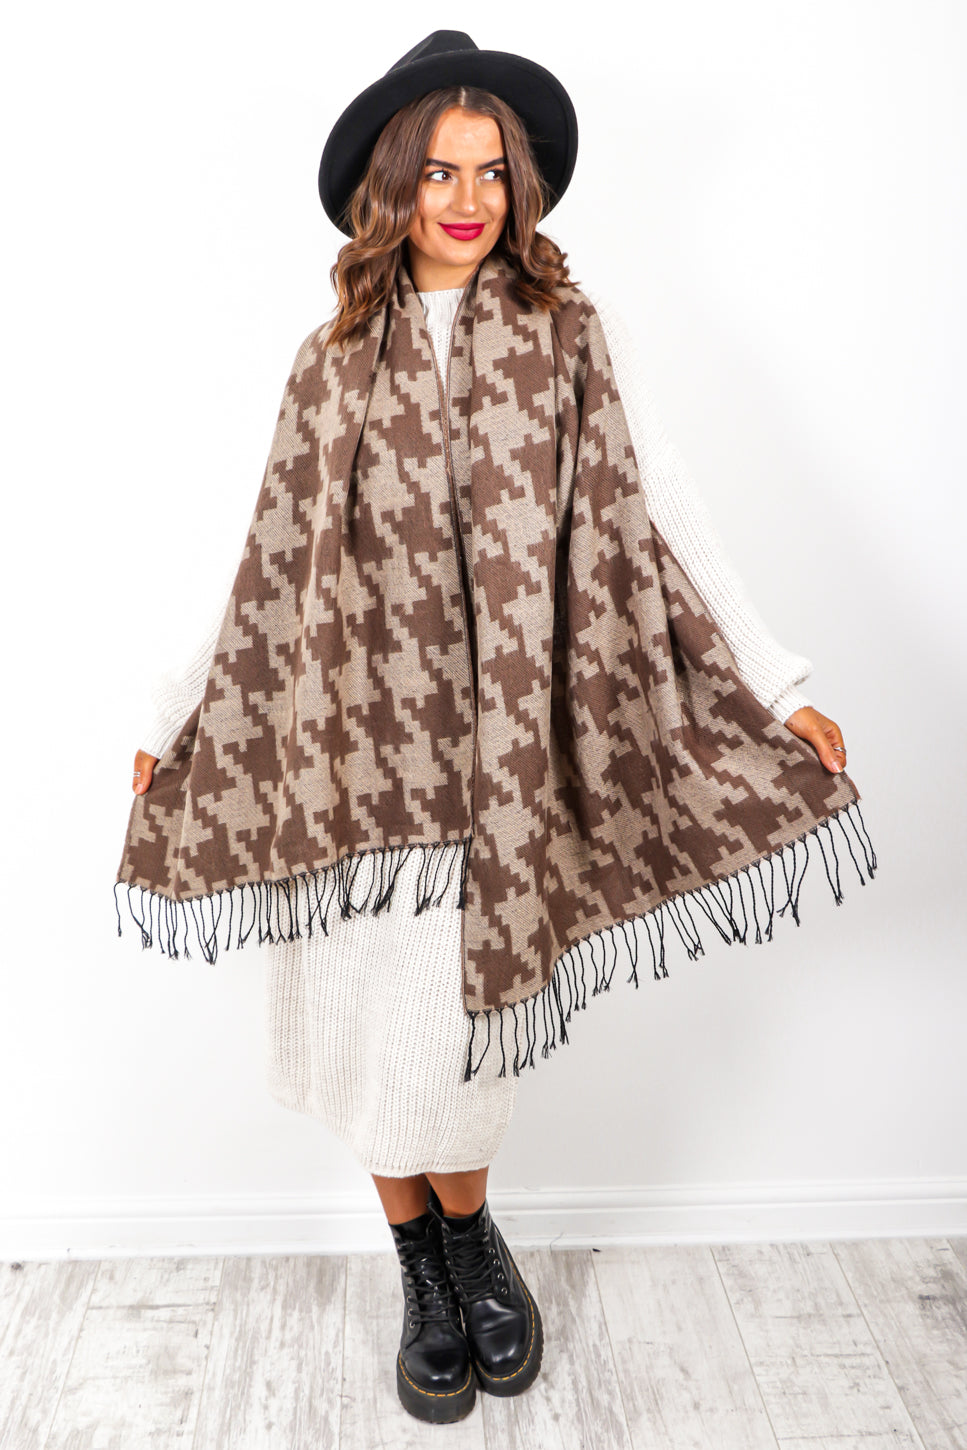 Wrap It Up - Chocolate Houndstooth Print Scarf